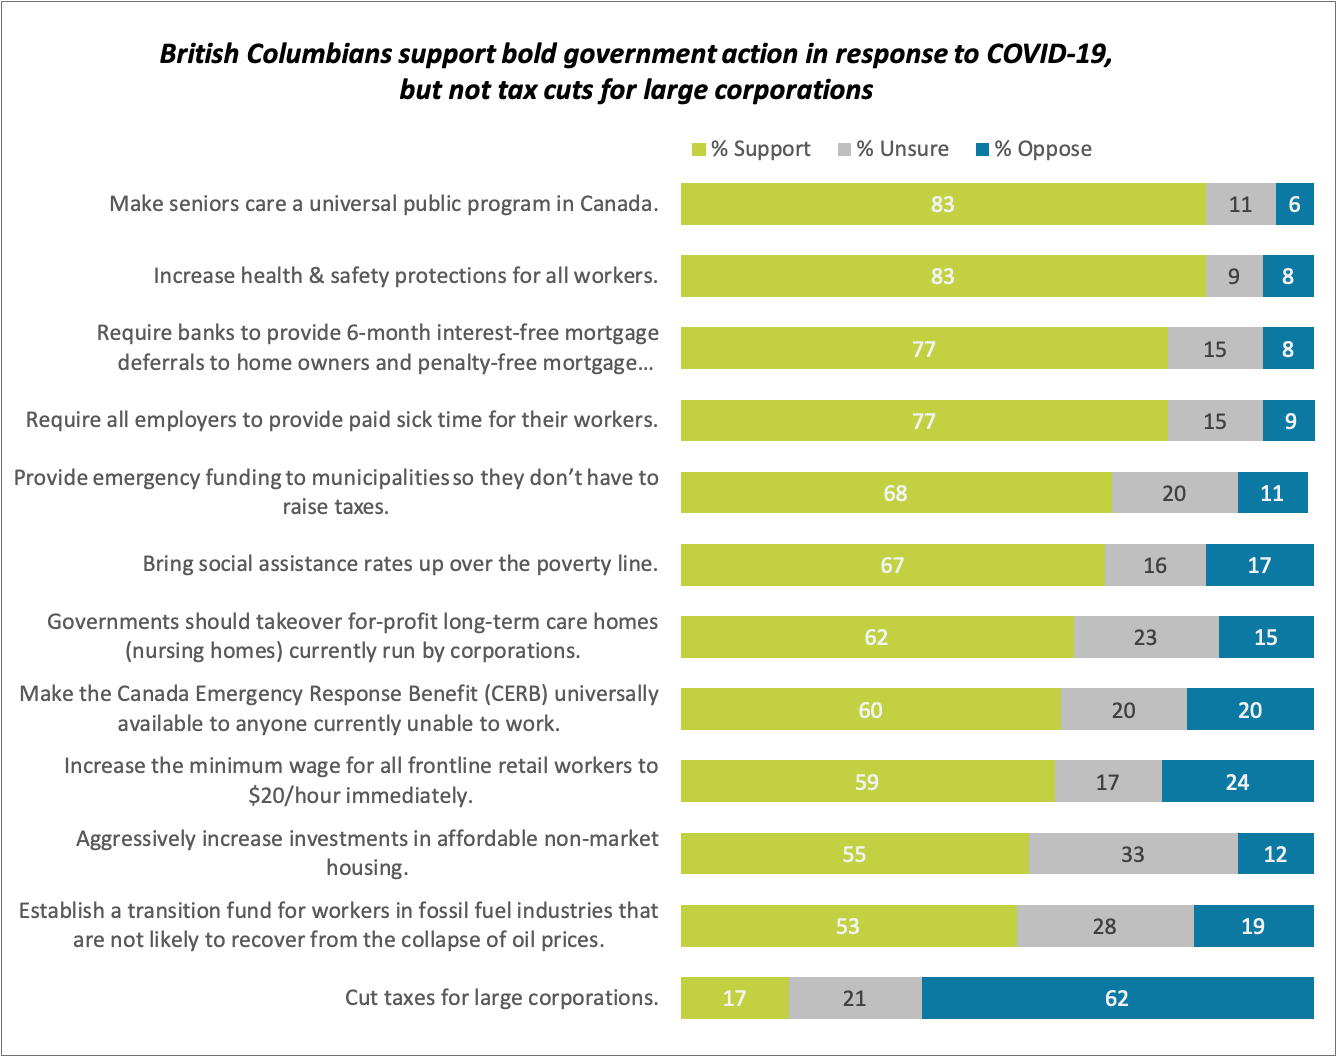 British Columbians support bold government action in response to COVID-19, but not tax cuts for large corporations